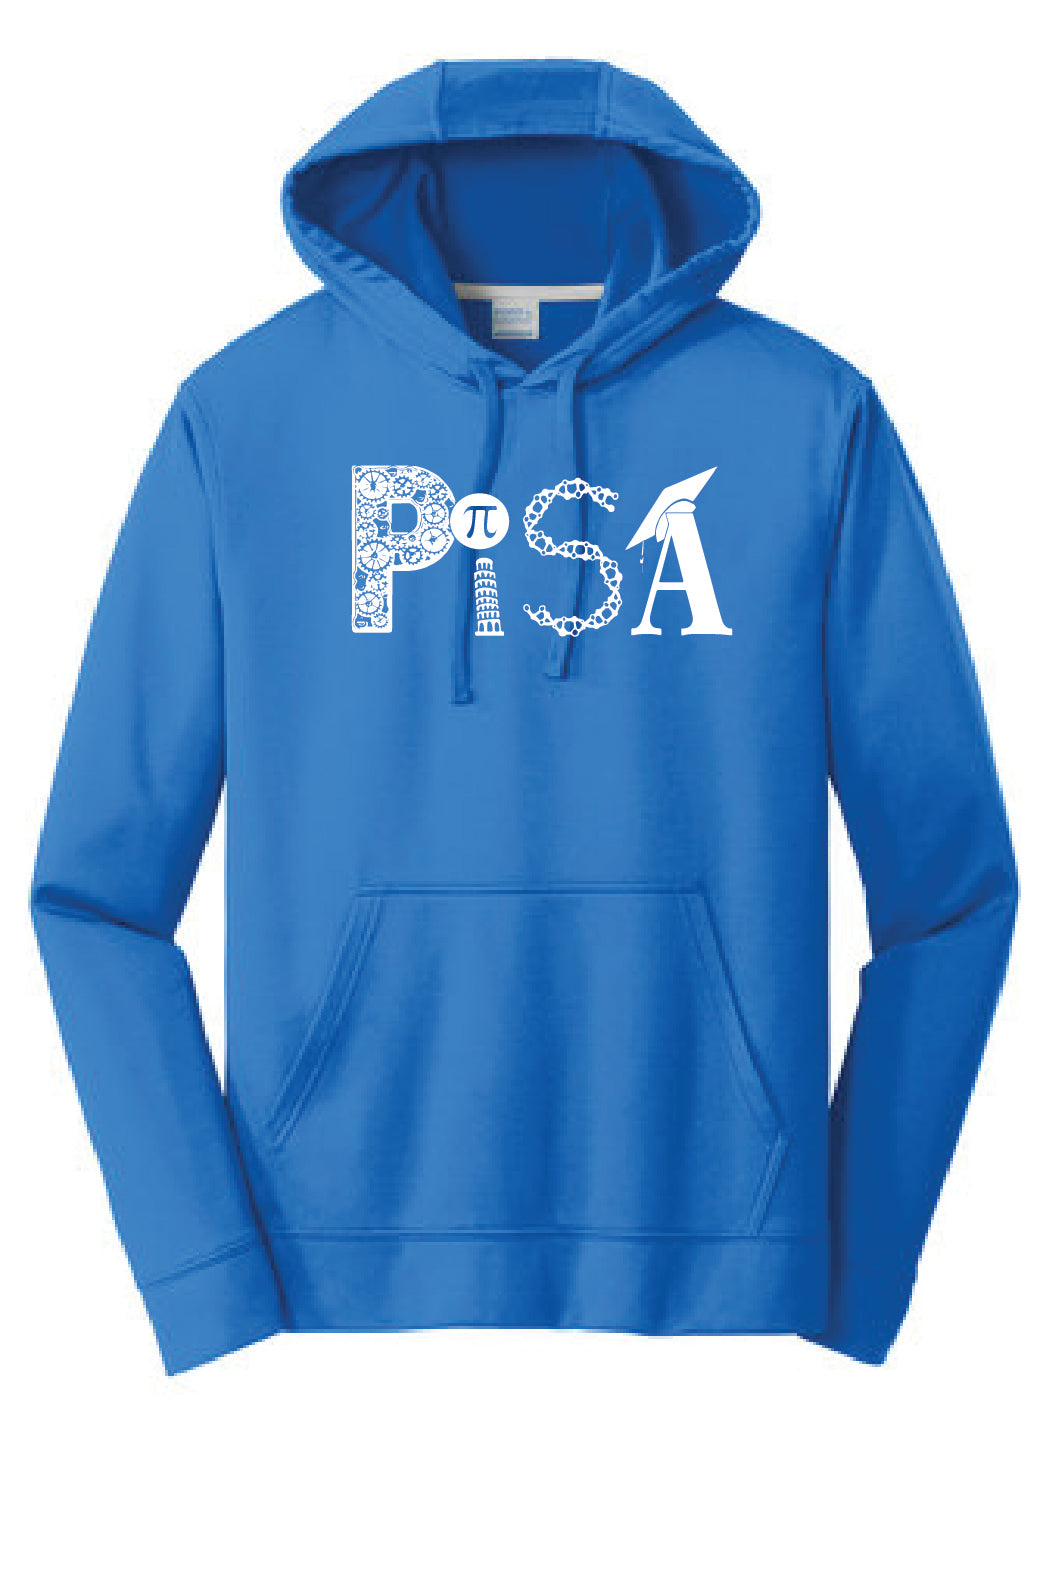 Performance Hood Screen Printed- PISA- Royal Blue